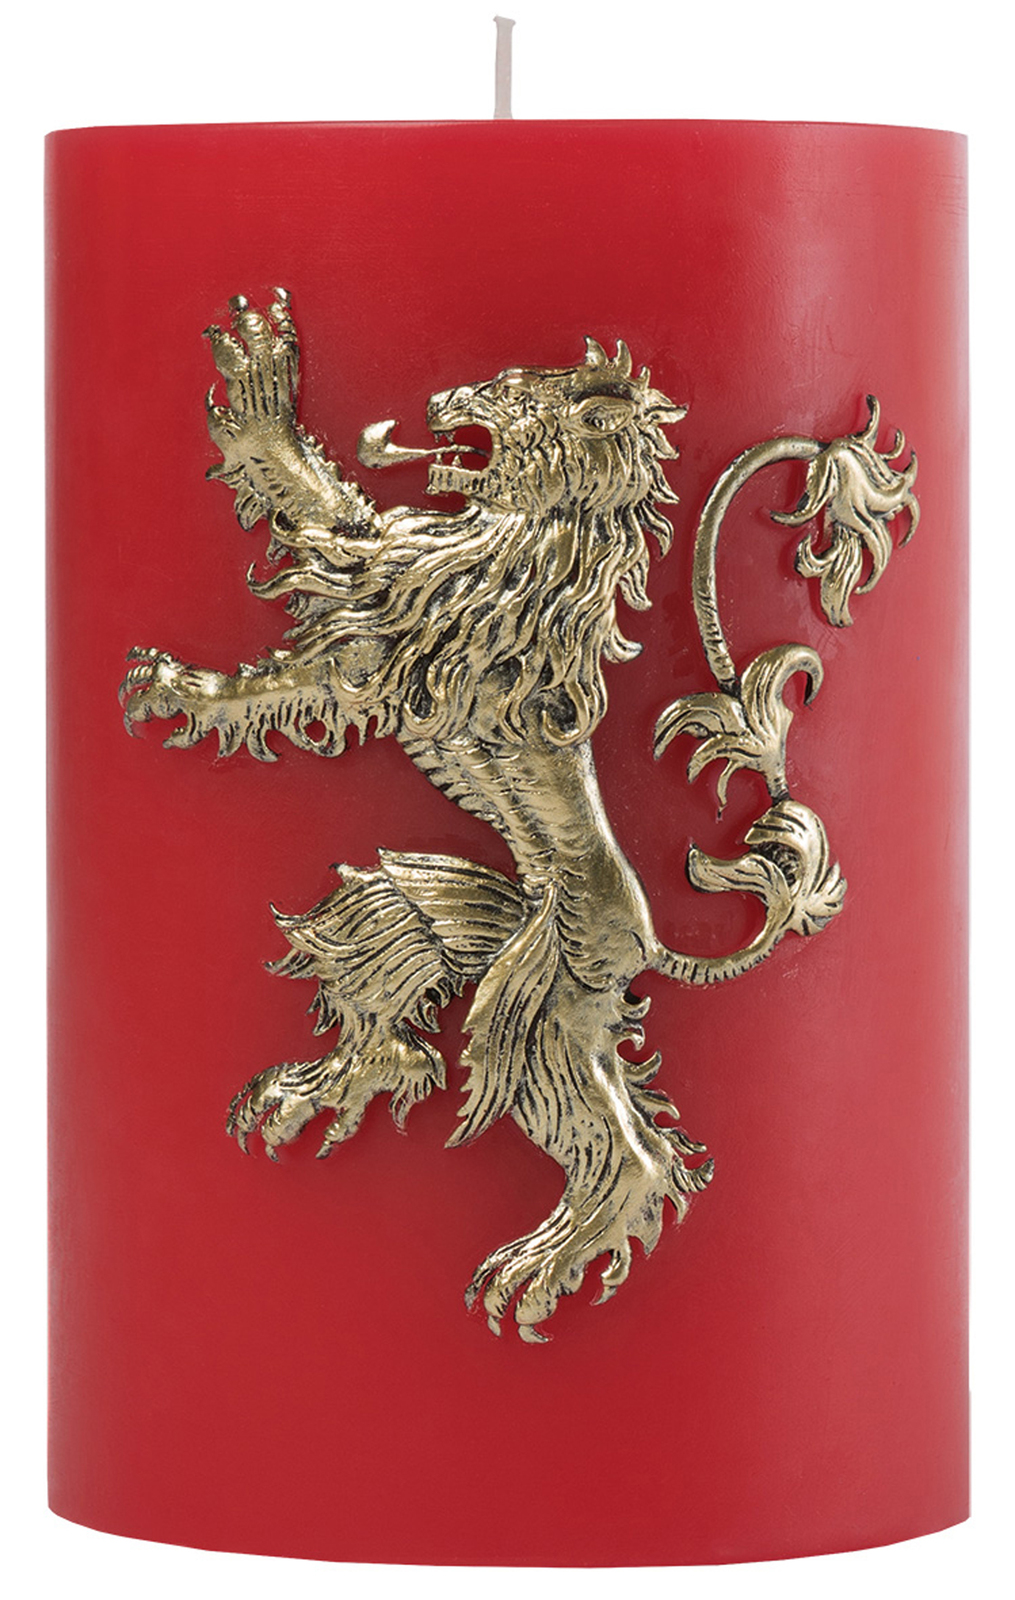 Game Of Thrones Sculpted Insignia Candle House